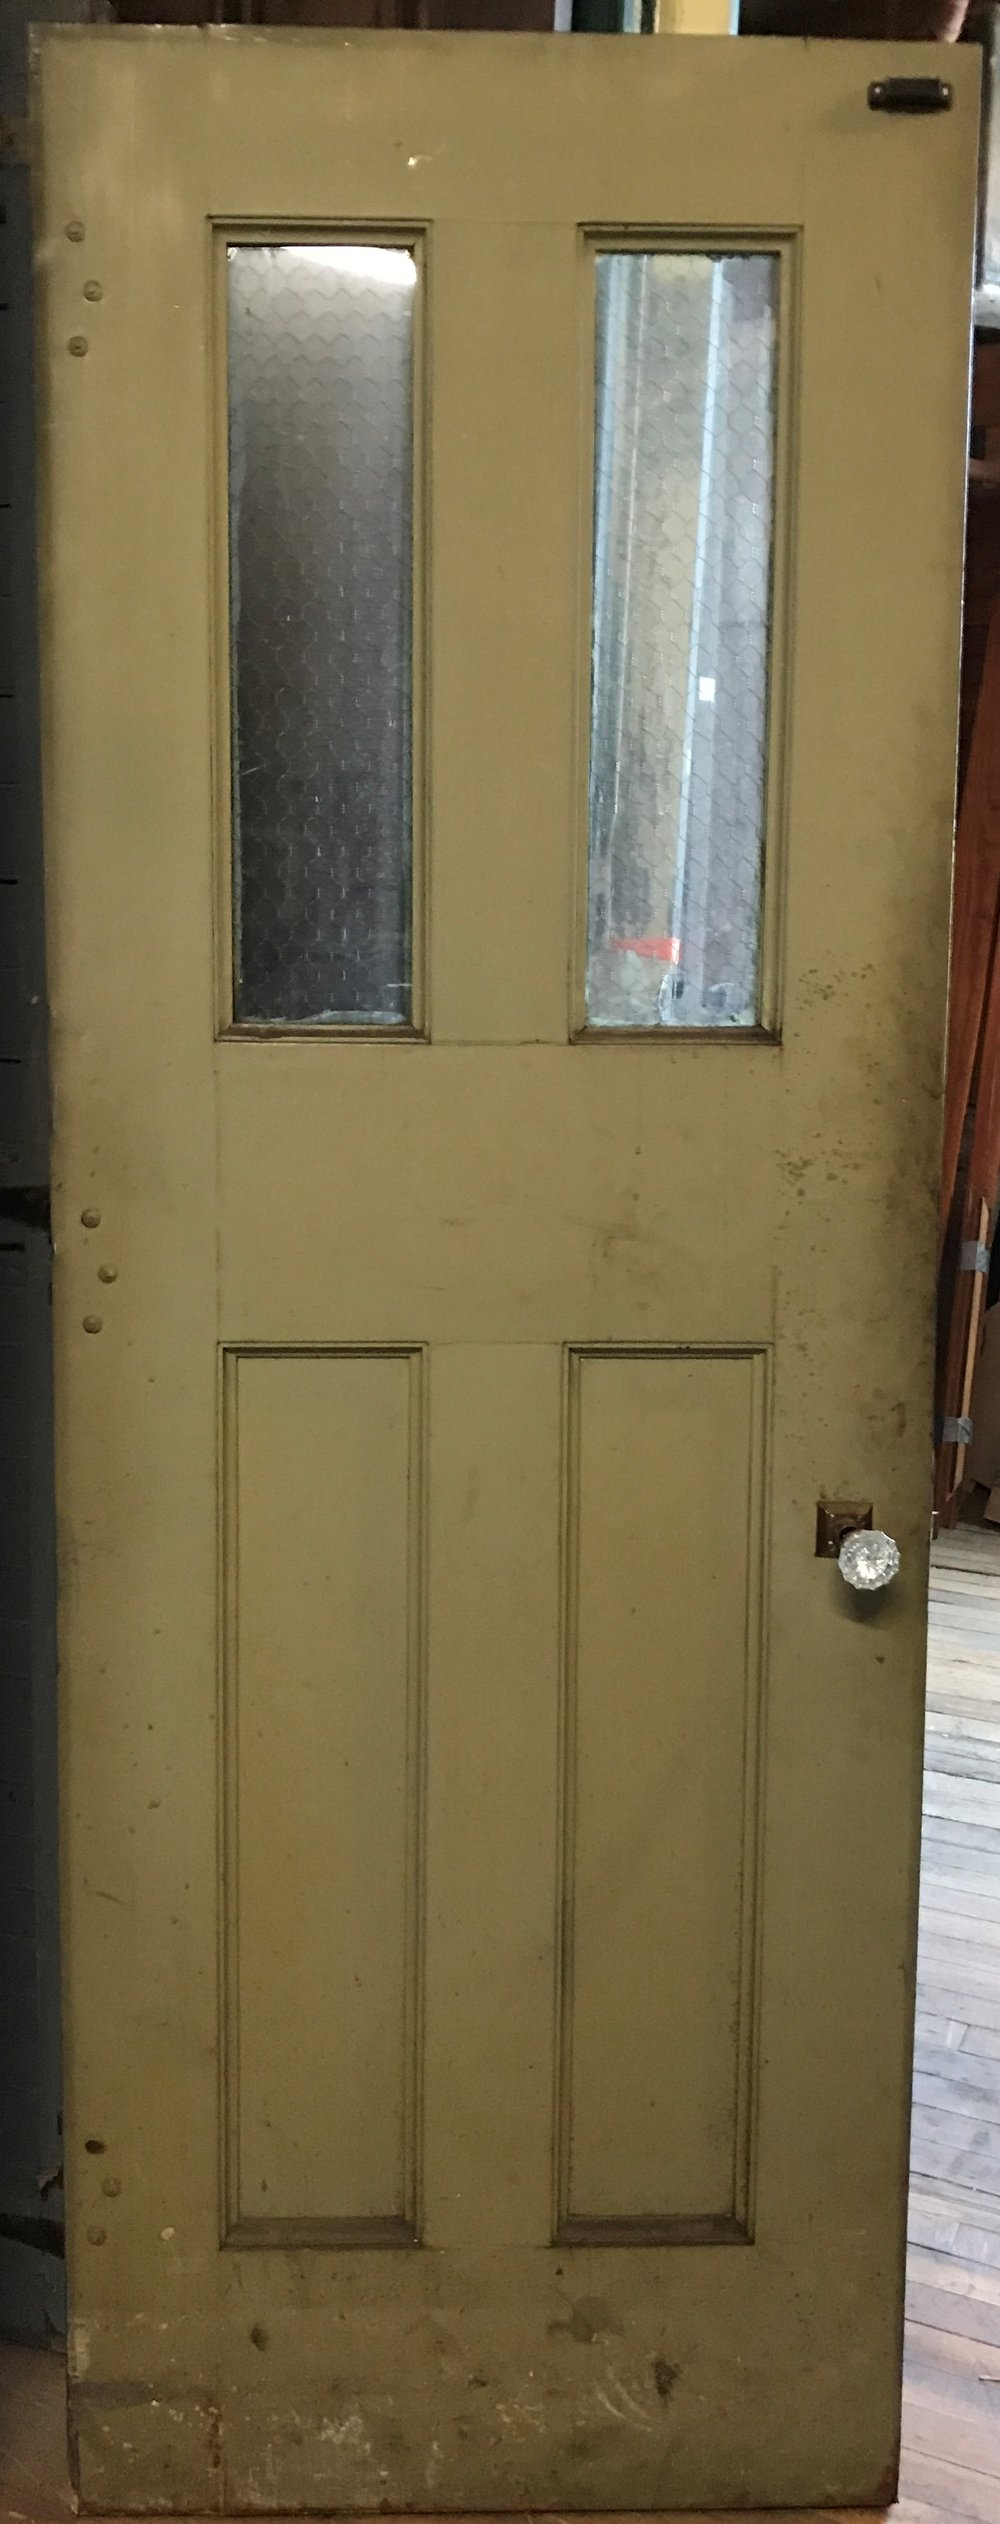 All Doors — Portland Architectural Salvage